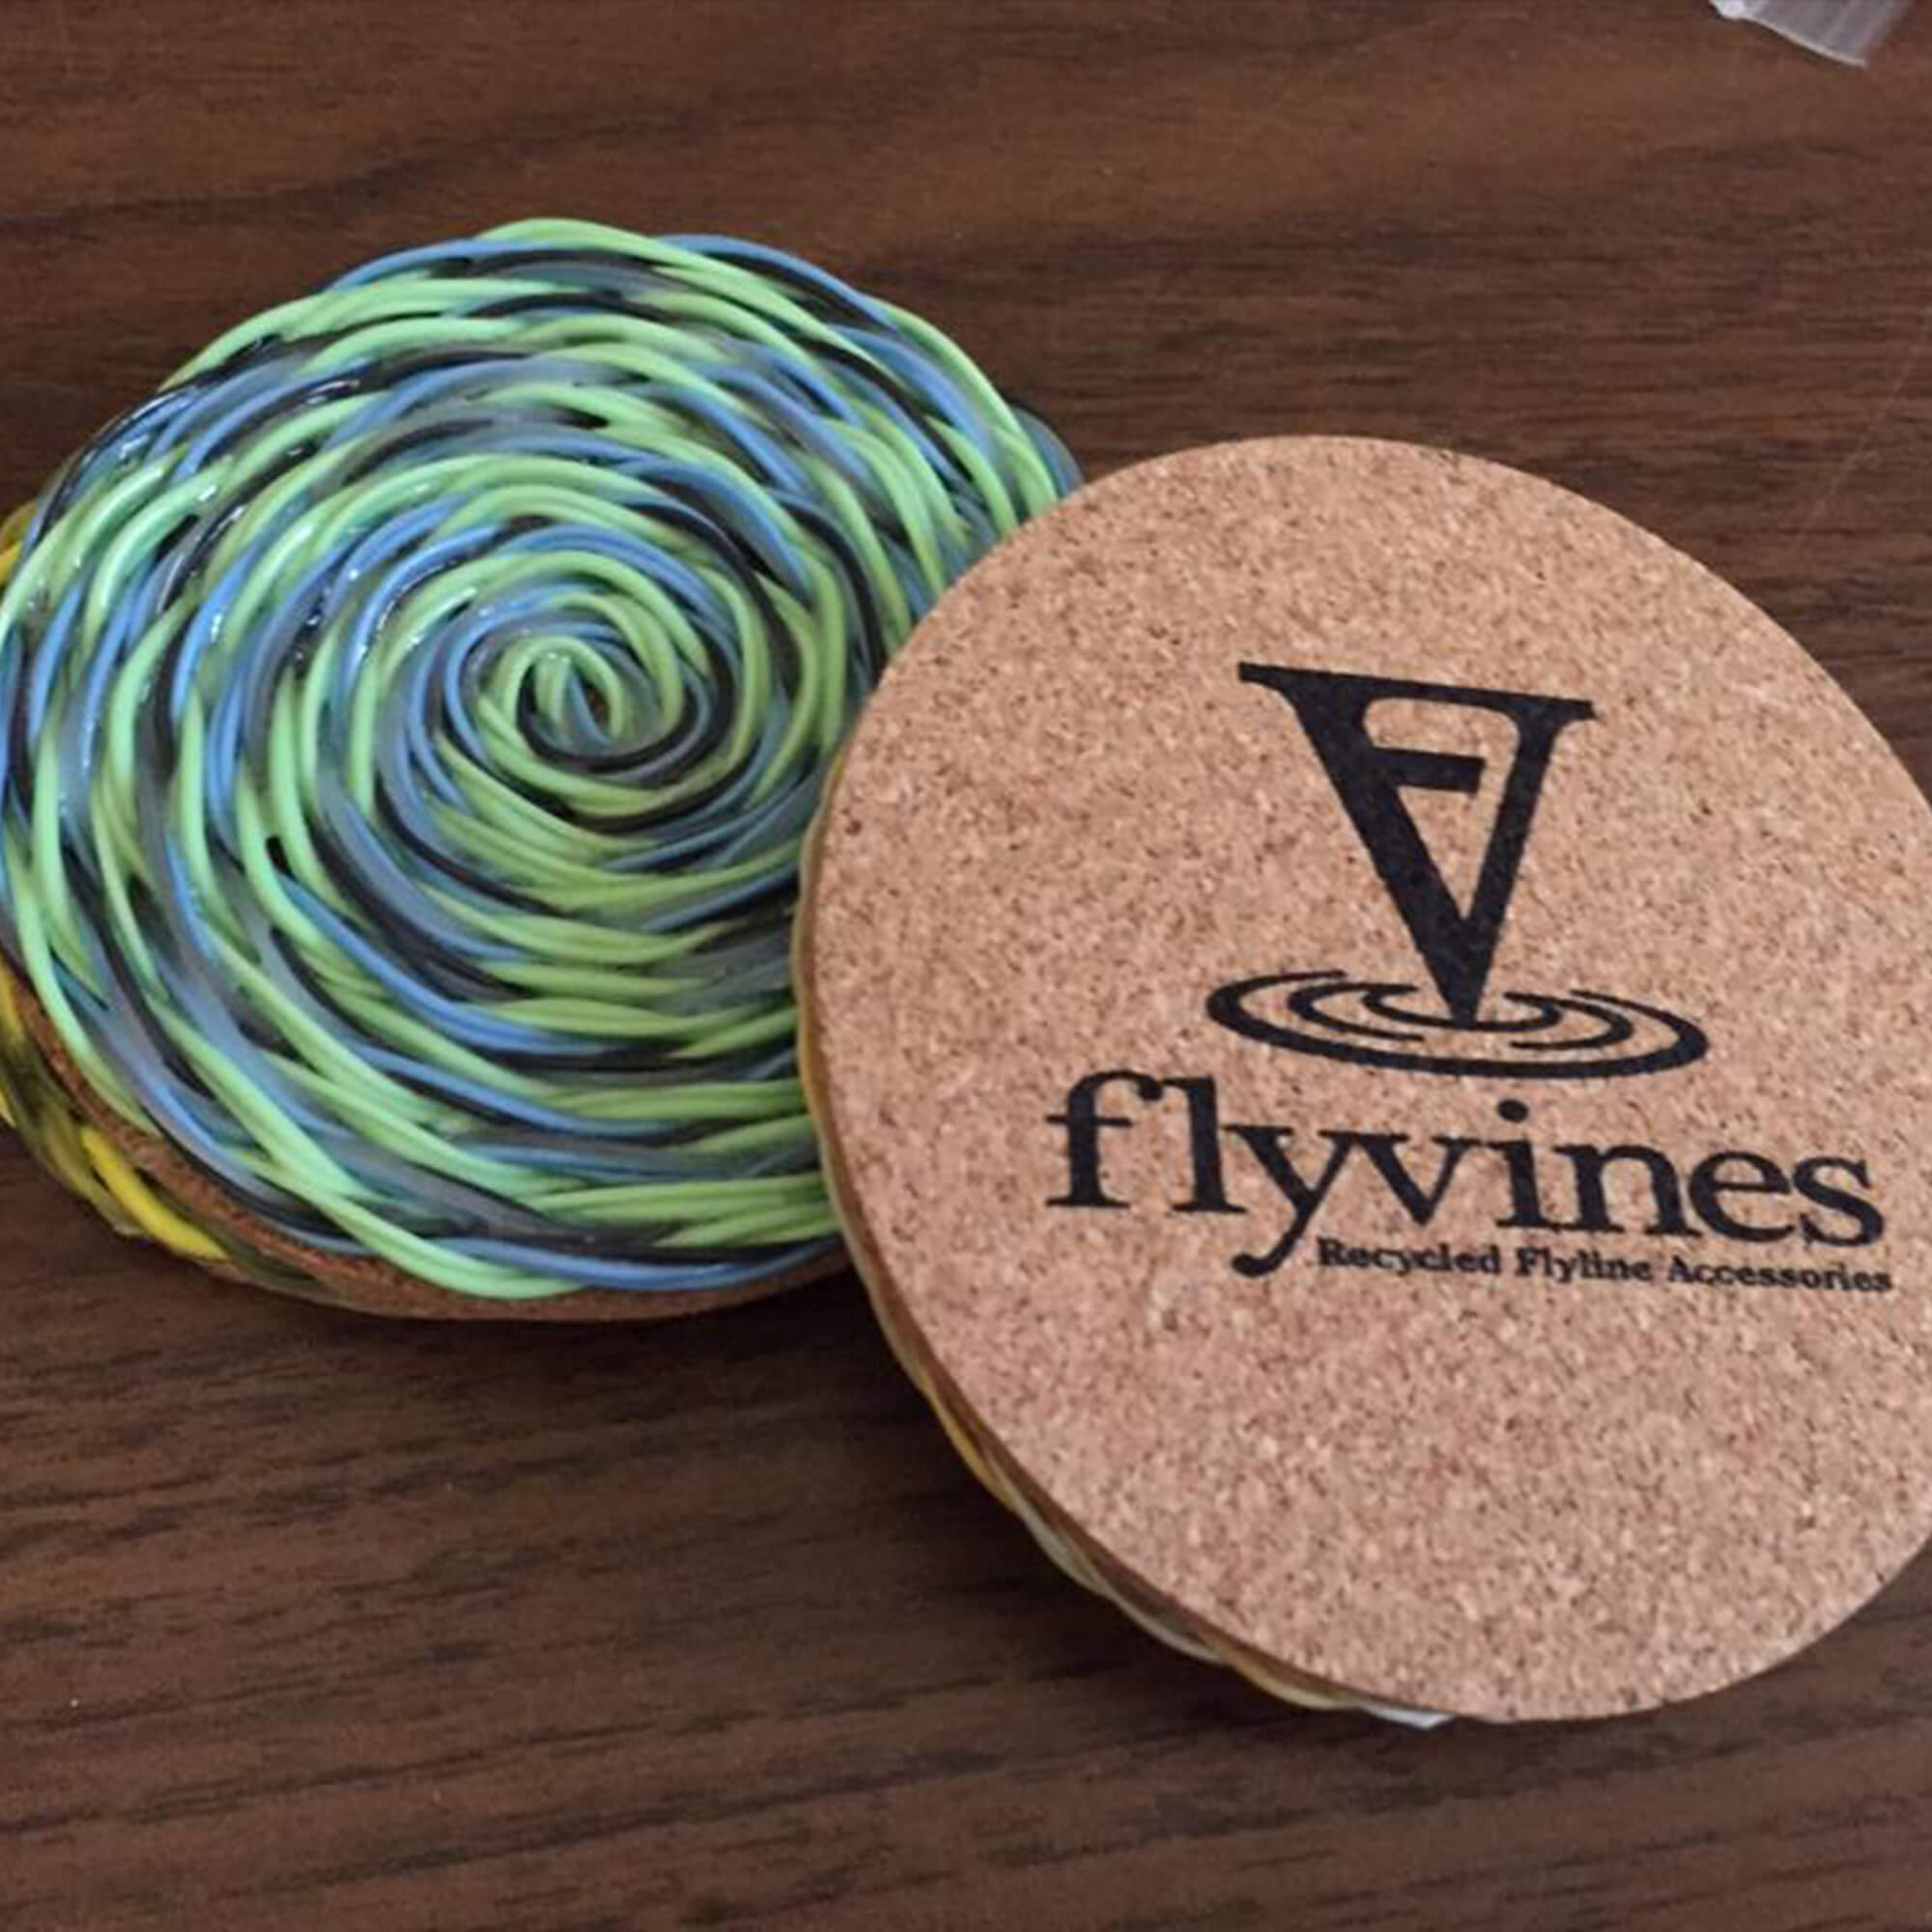 FLYVINES COASTER SET